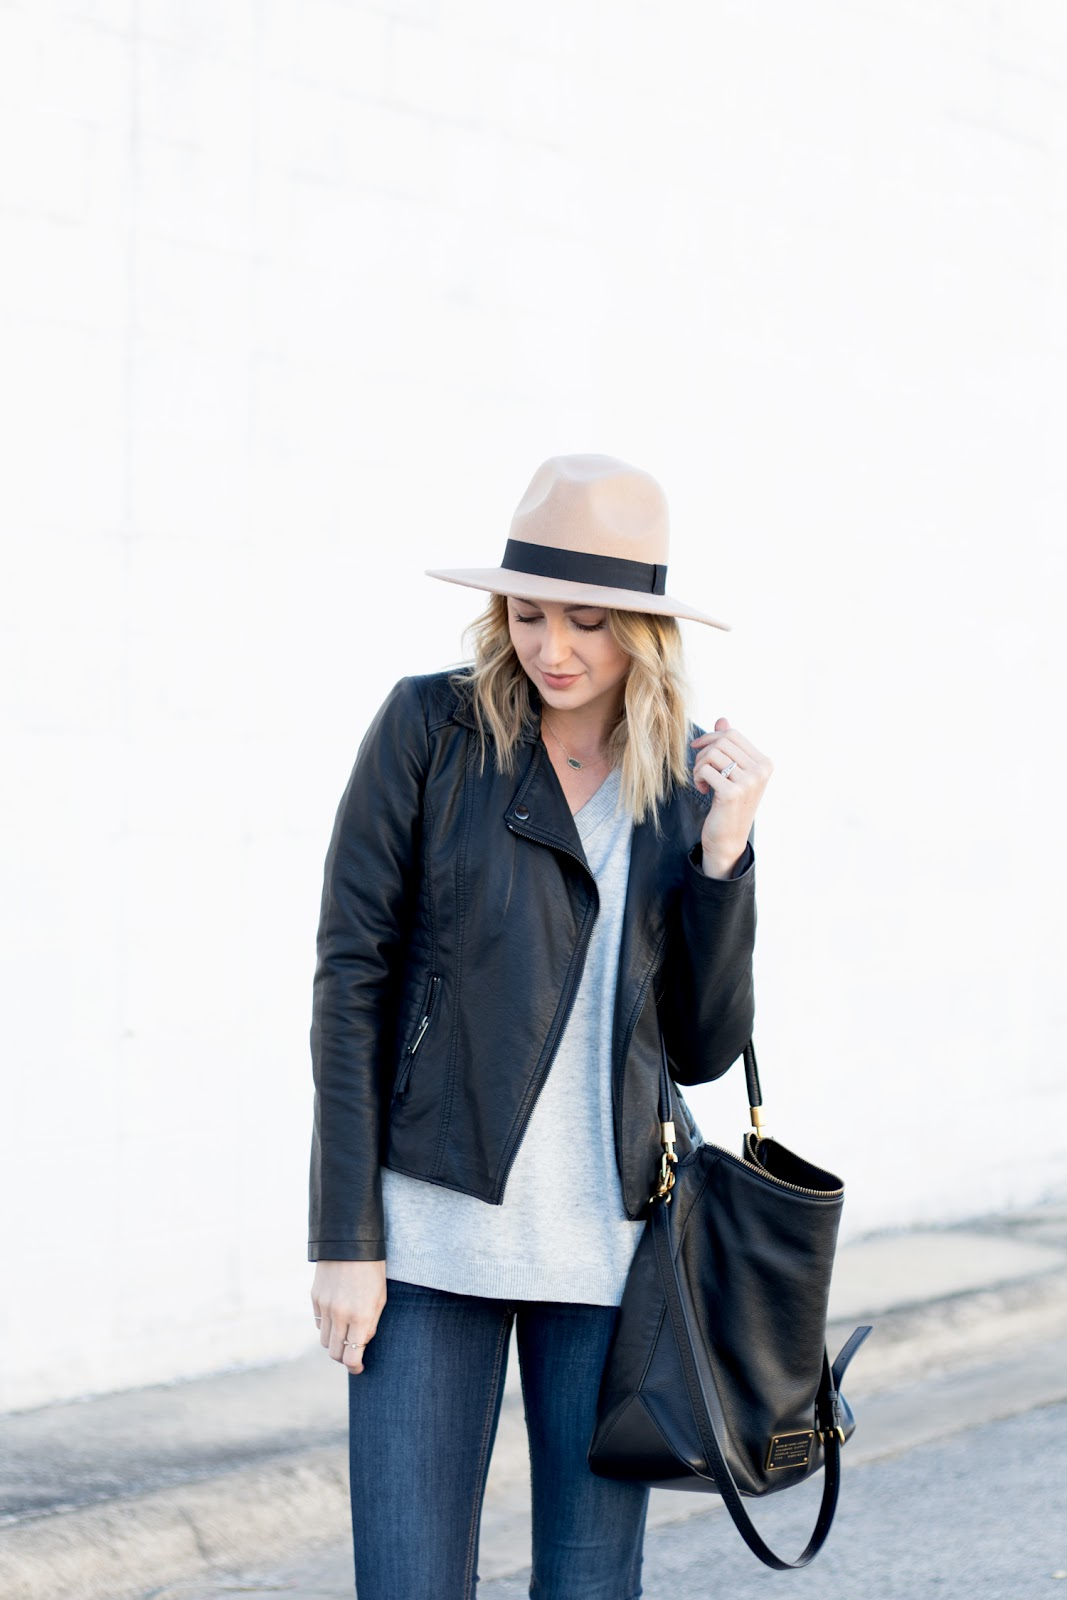 Leather jacket + wool hat